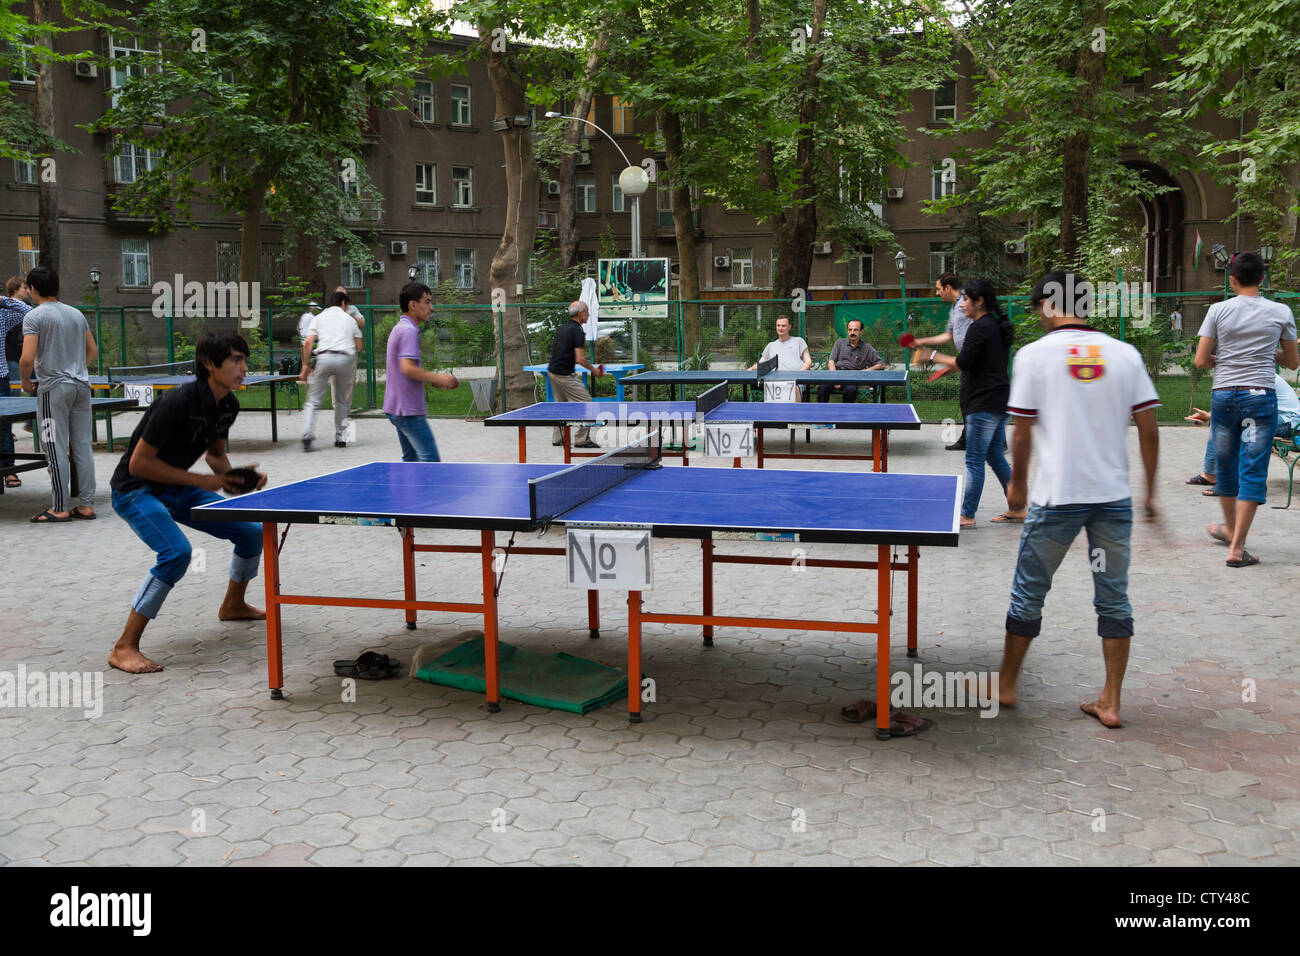 Les jeunes à jouer au tennis de table sur les tables en plein air à Douchanbé, Tadjikistan Photo Stock